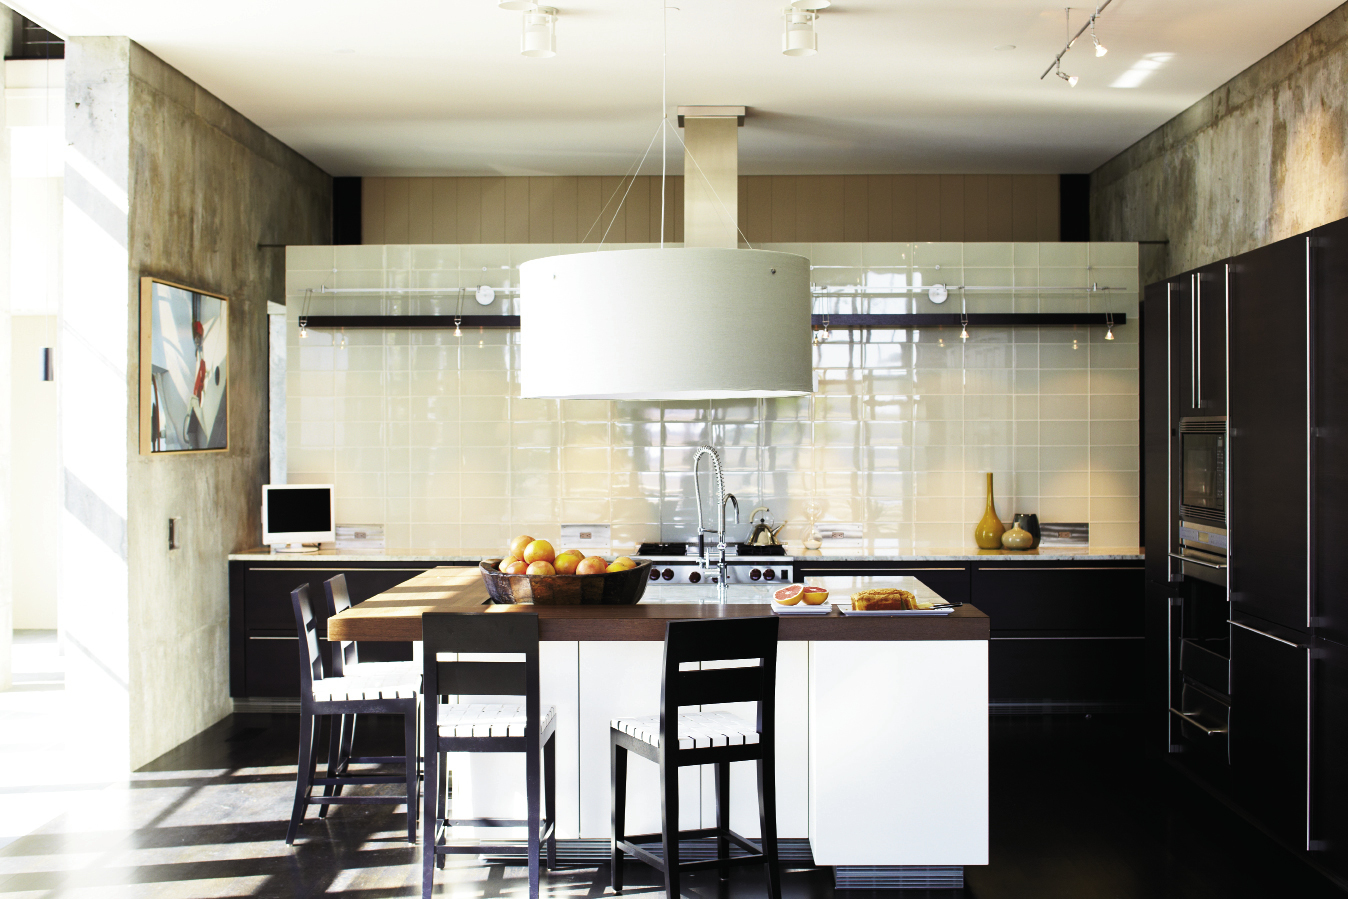 Island Living: The Siematic-designed kitchen features wenge cabinetry and woodwork and a large round shade pendant; a floating wall of light green glass subway tiles offers a cool and contemporary backdrop.